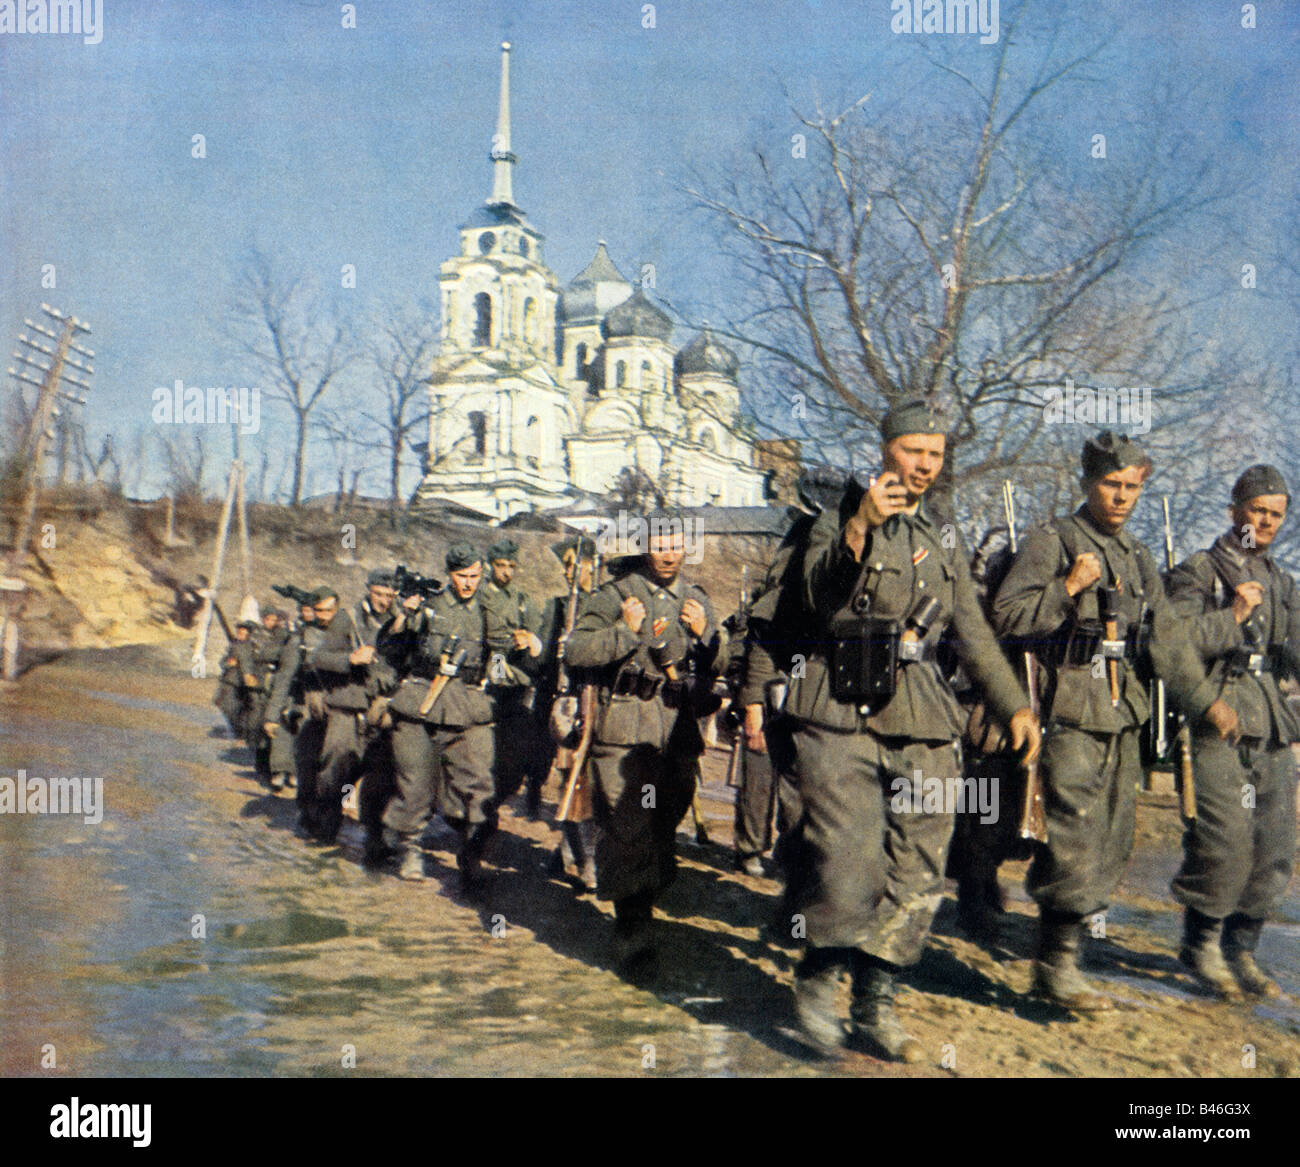 Wehrmacht Infantry Advance German Army grenadiers marching